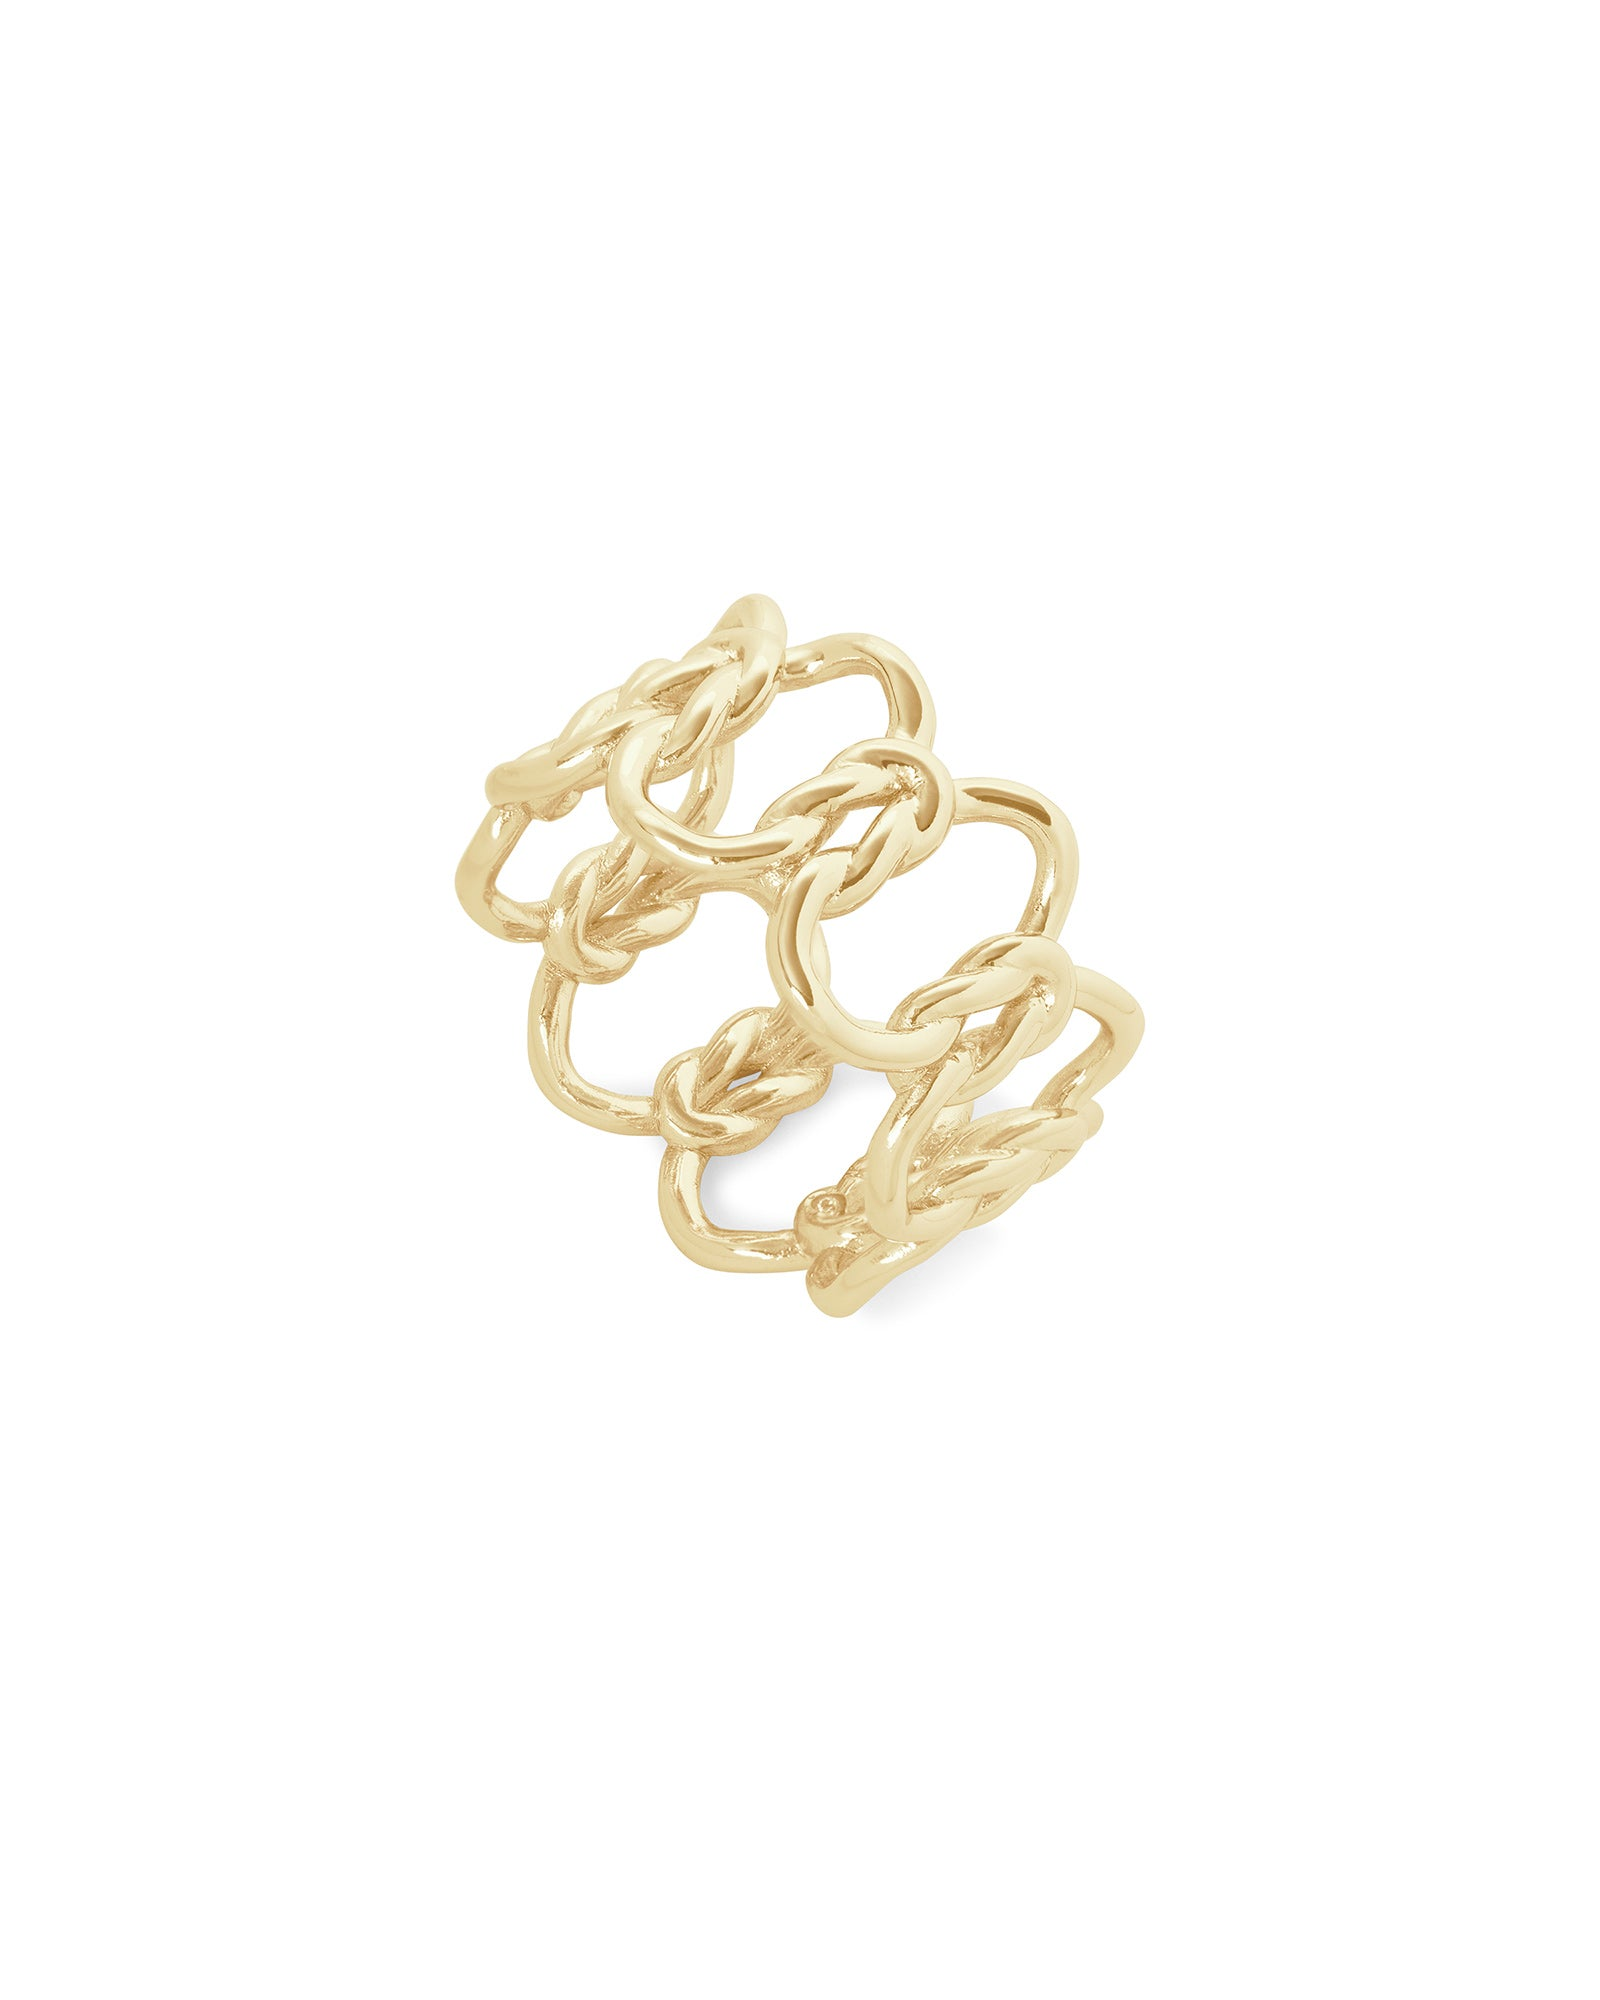 Kendra Scott Fallyn Band Ring